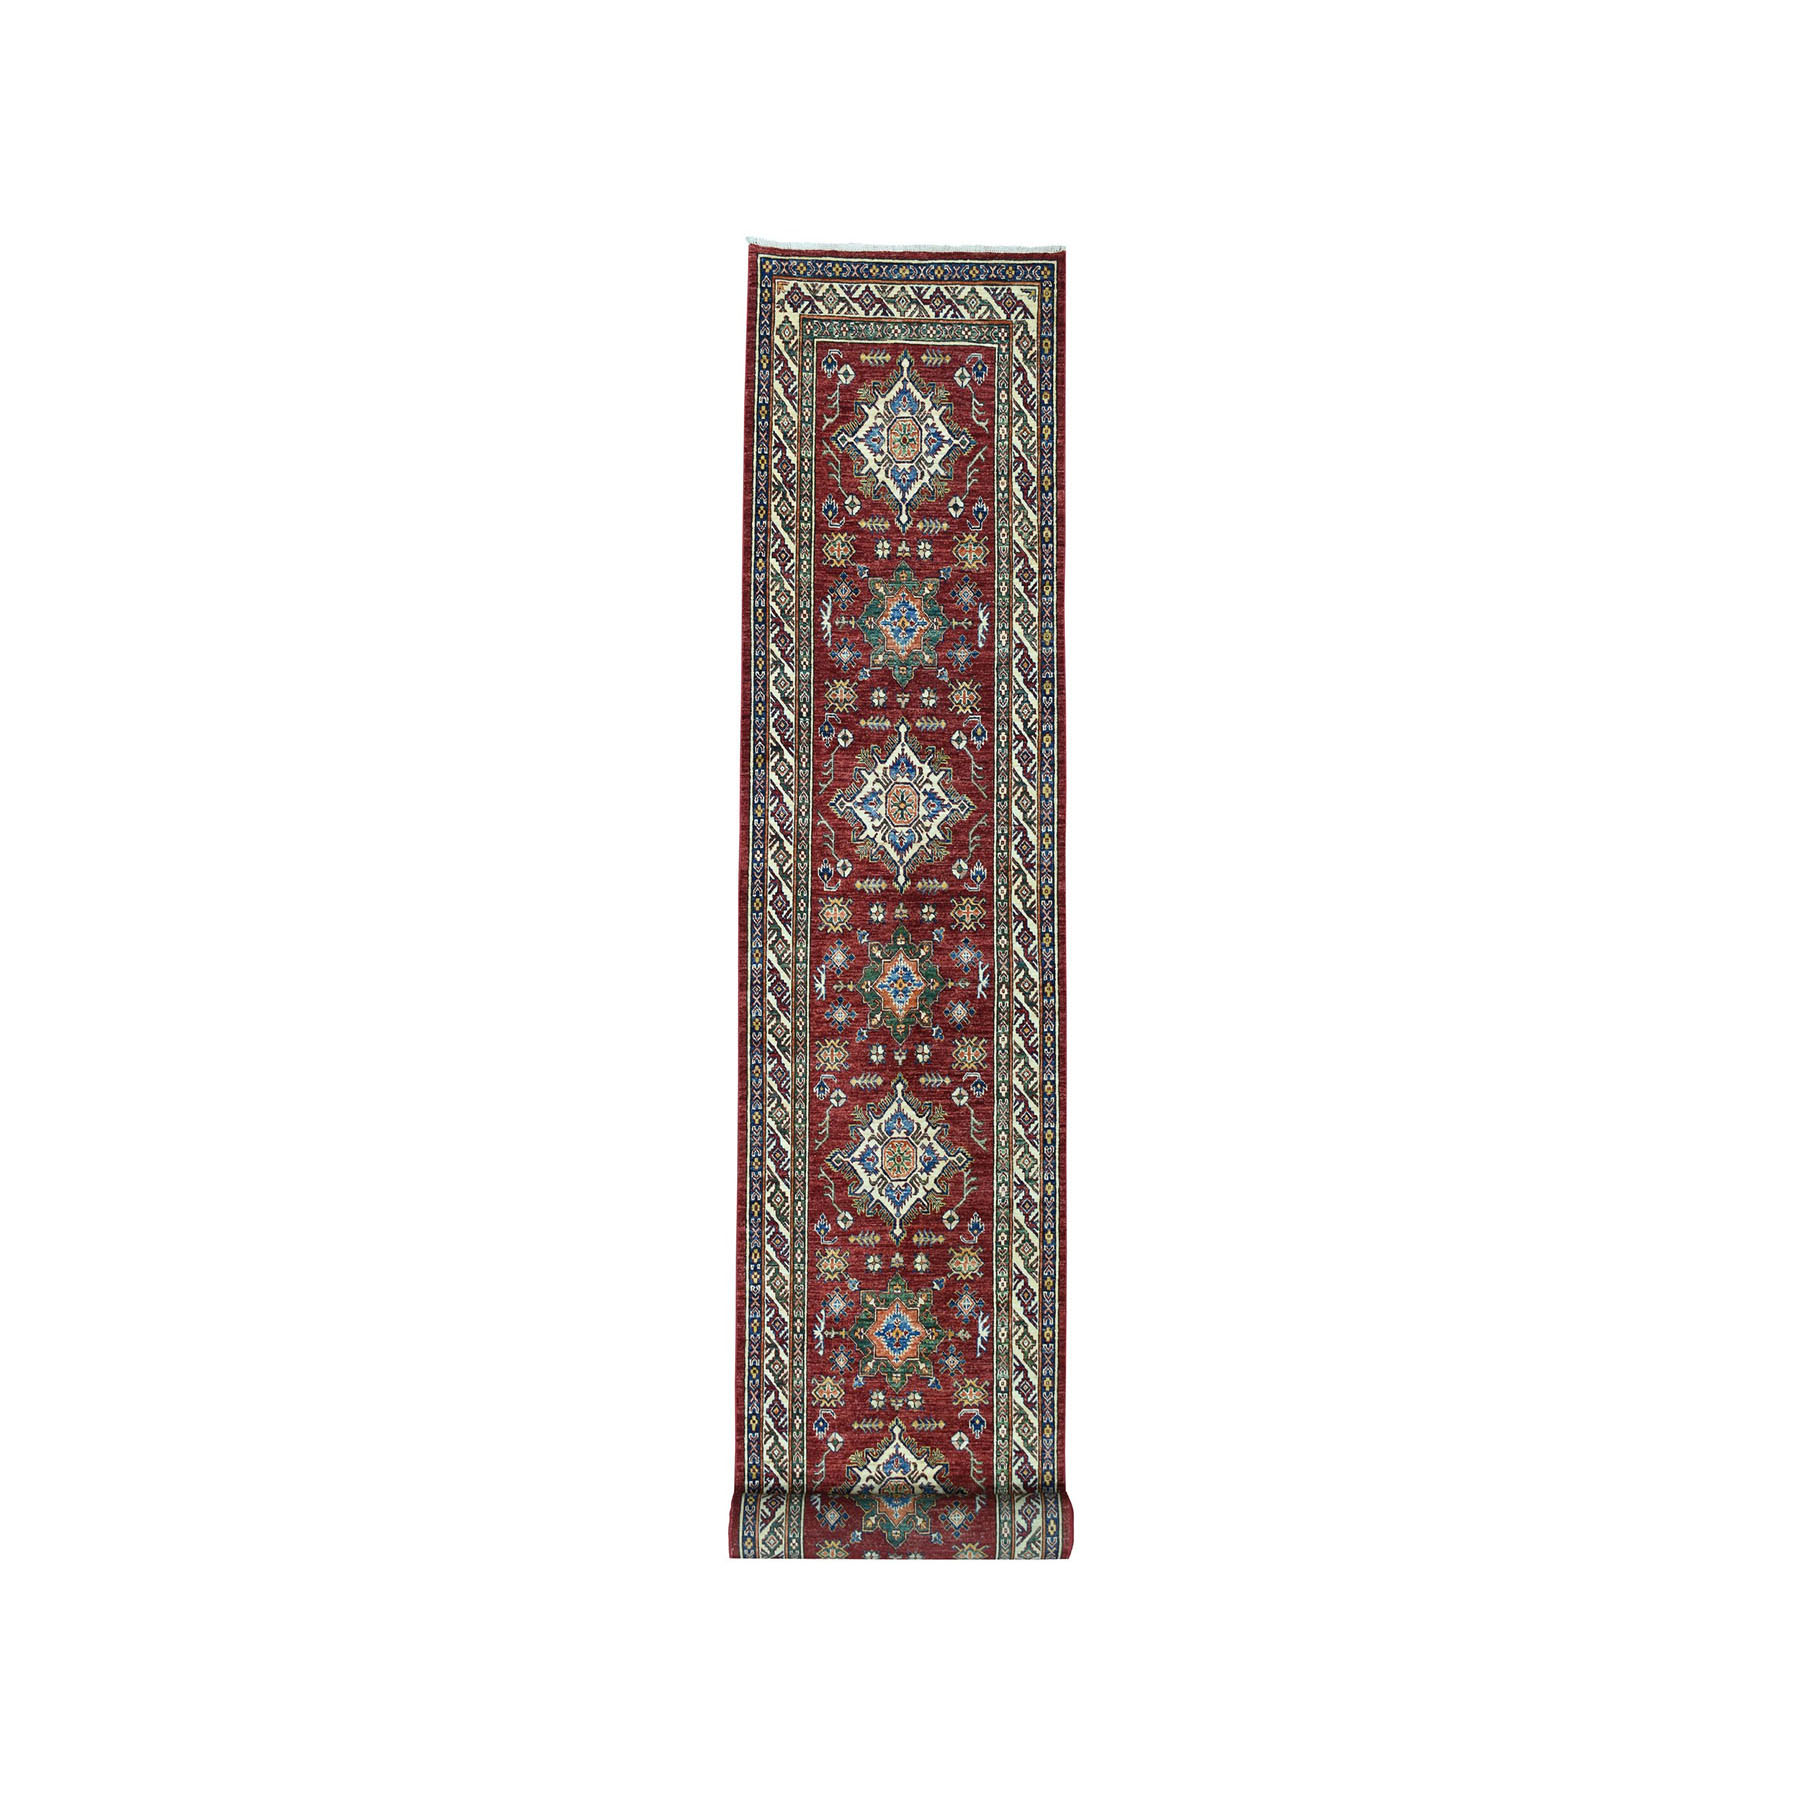 "3'4""X19' Red Super Kazak Geometric Design Pure Wool Xl Runner Hand-Knotted Oriental Rug moae0de6"